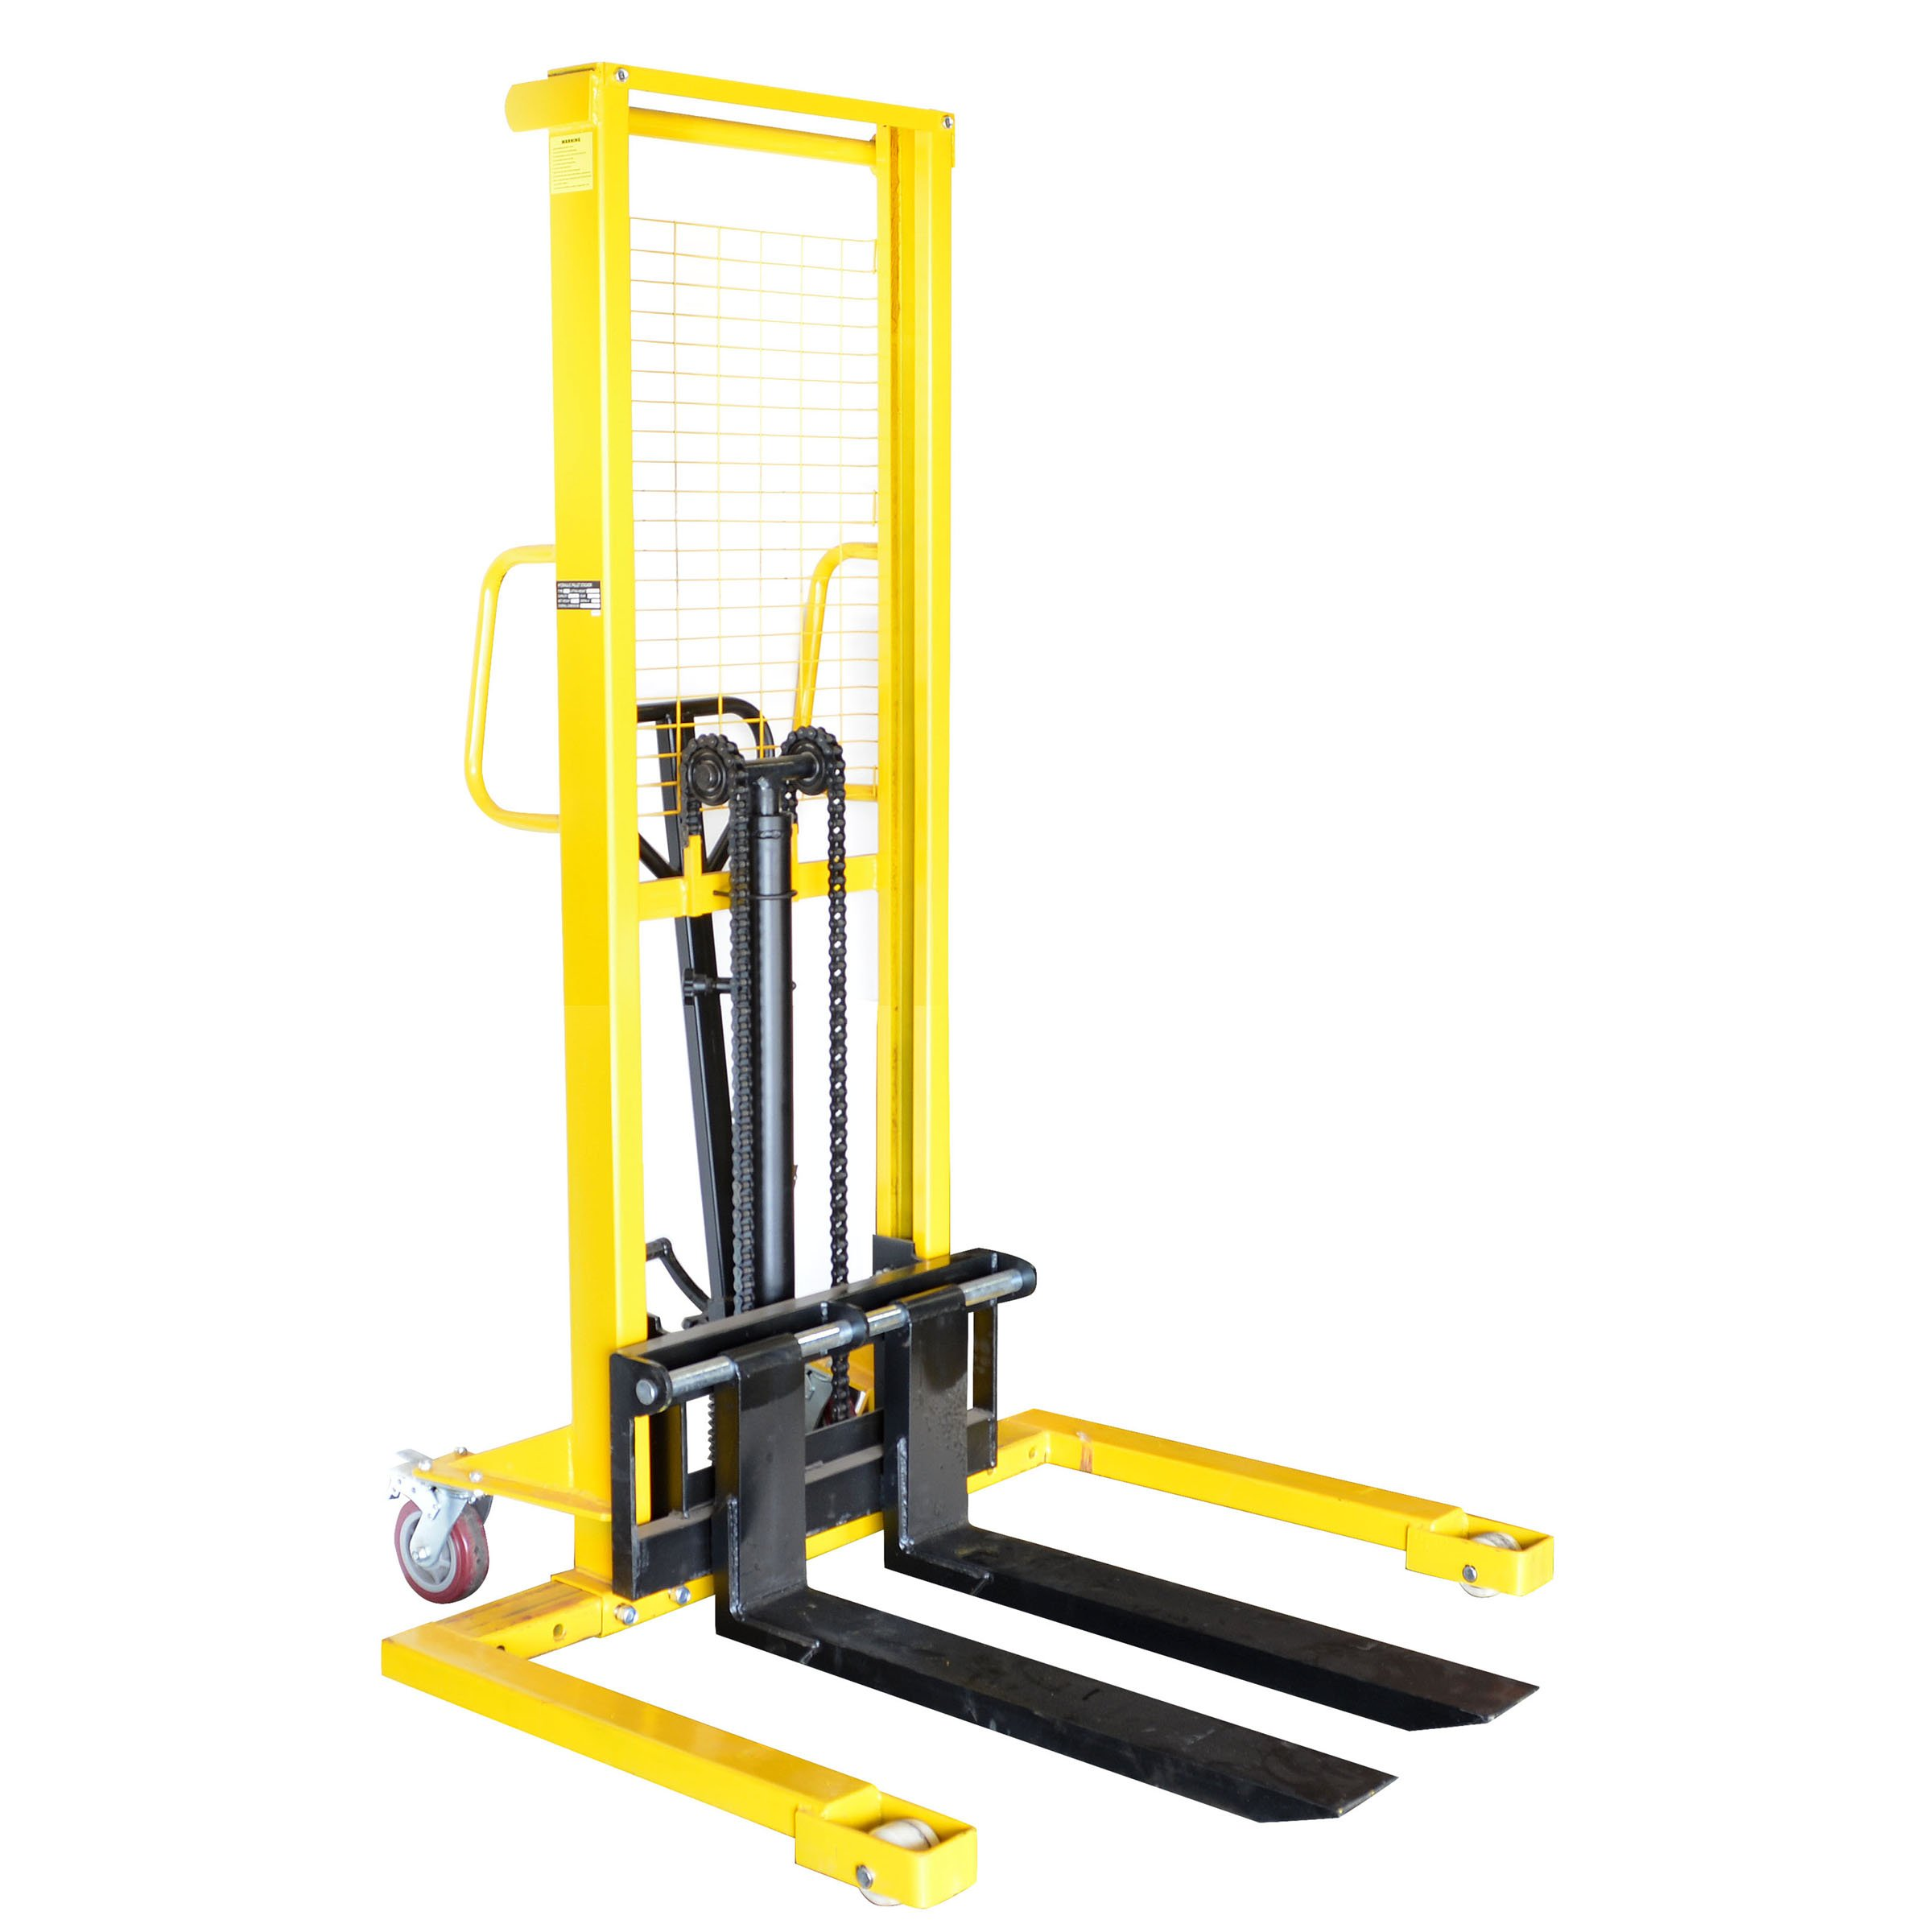 Pro-Series 700398 Manual Pallet Stacker, 2,200-Pound Capacity